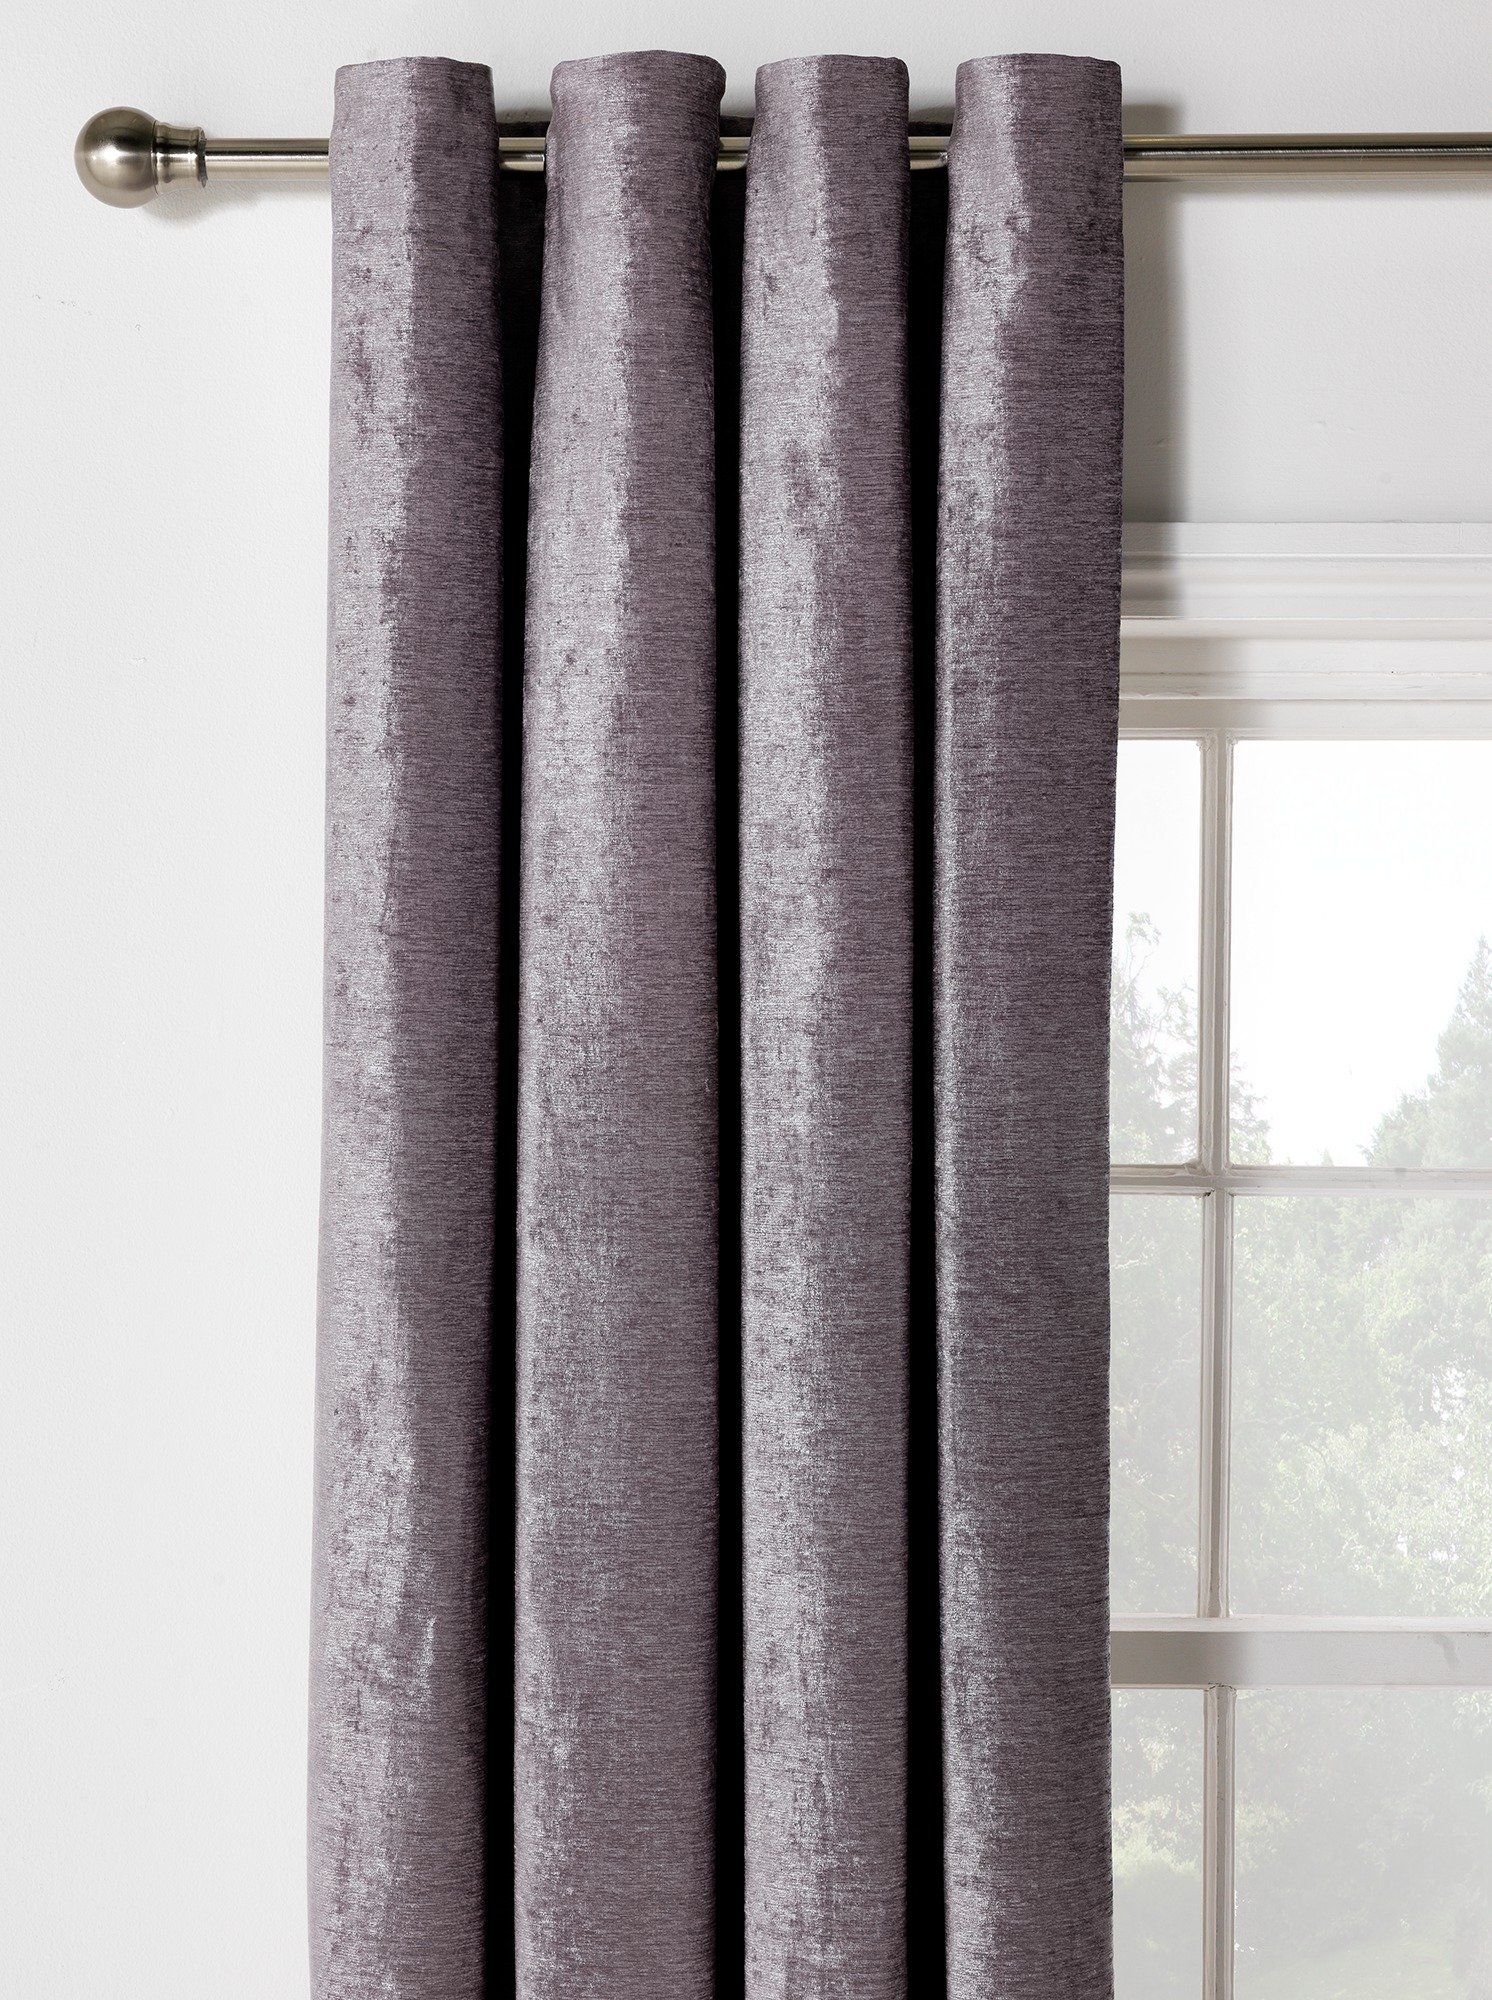 Beaded door curtains argos - Heart Of House Abberley Blkout Lined Curtains 168x228 Grey